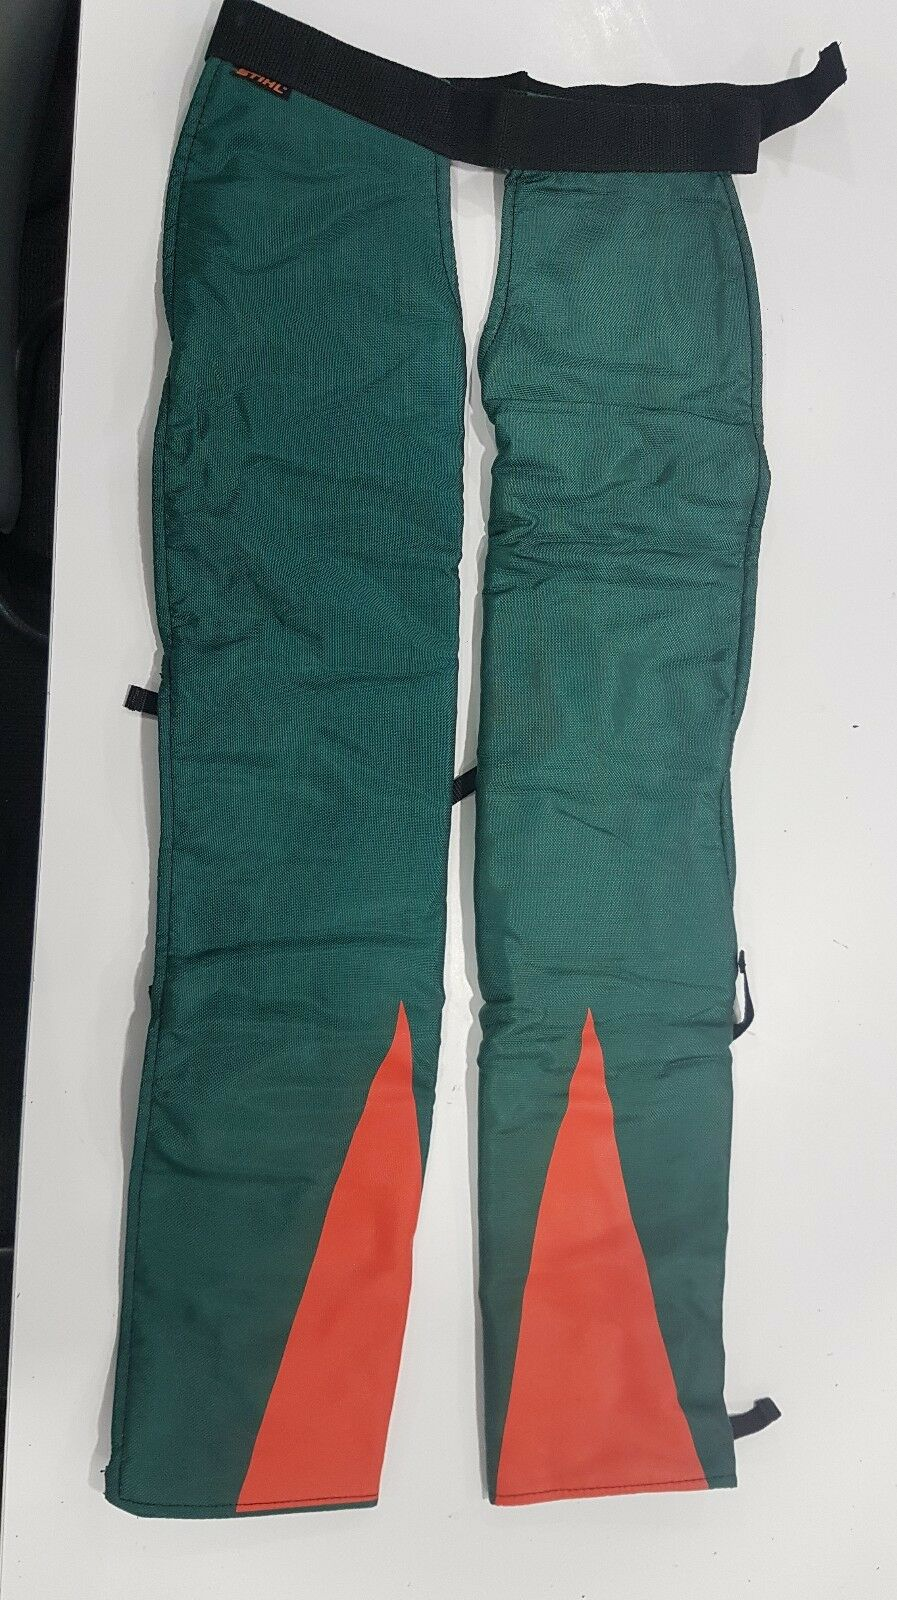 NEW Genuine Stihl Chainsaw Protective Safety Chaps   Leggings   Pants - Large